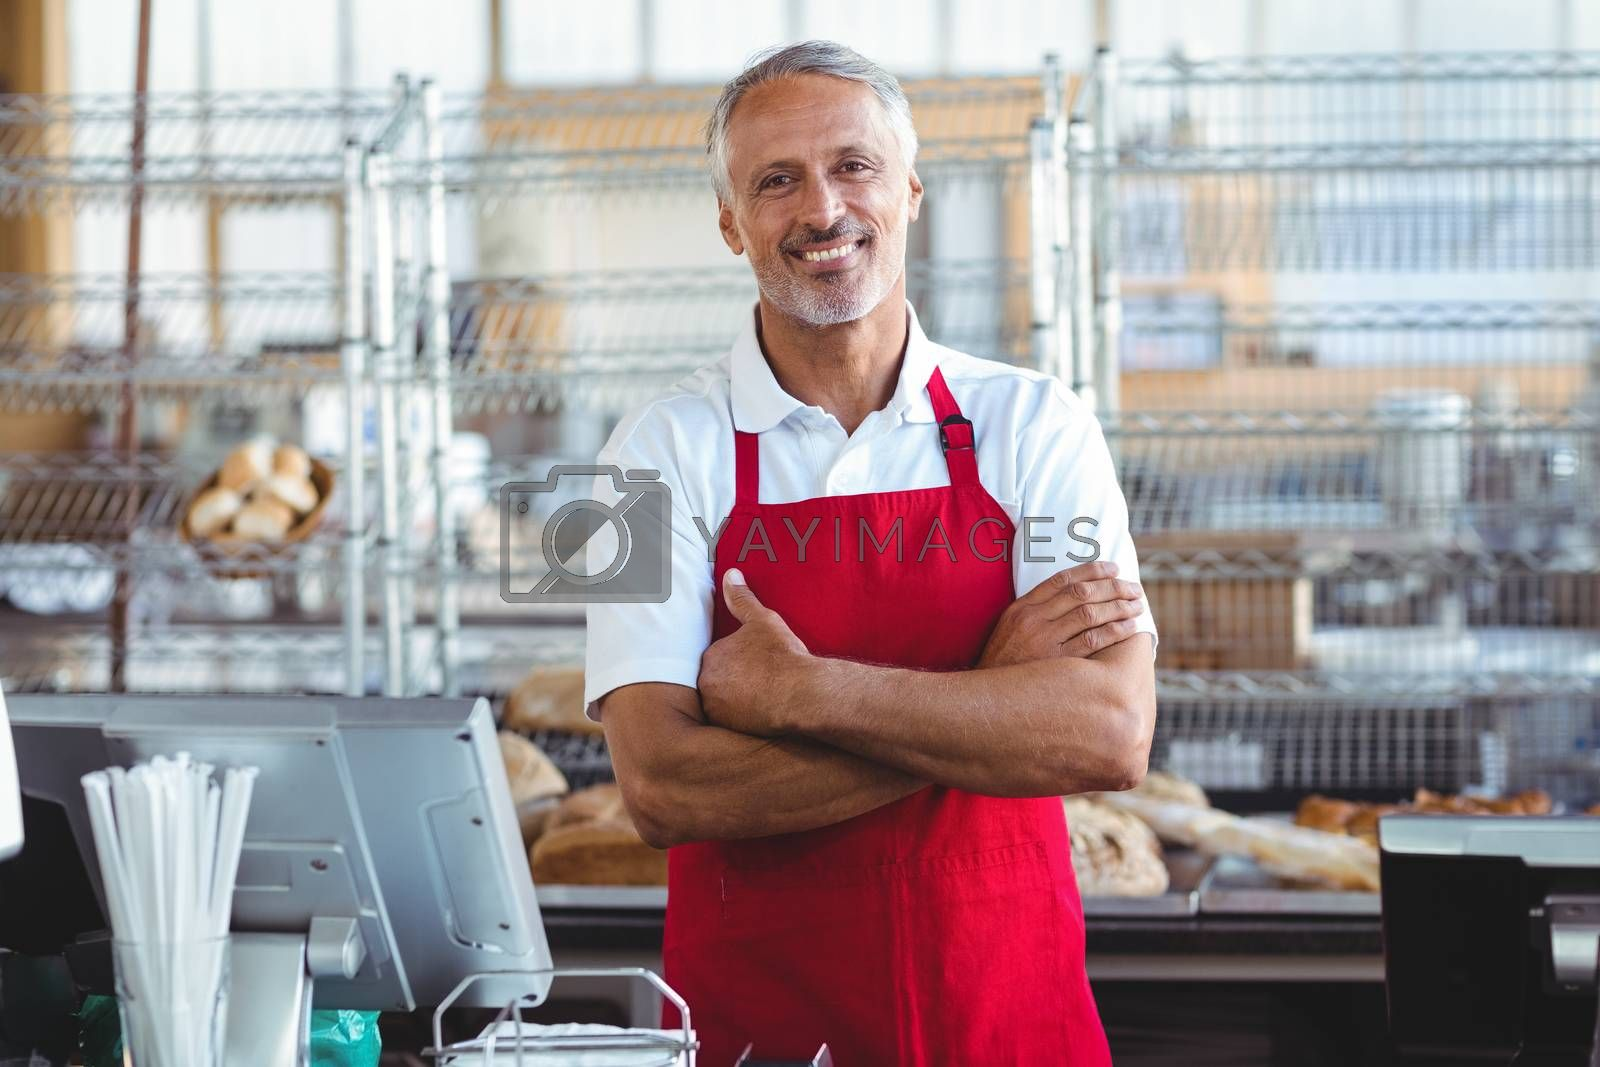 Royalty free image of Barista smiling at camera with arms crossed by Wavebreakmedia